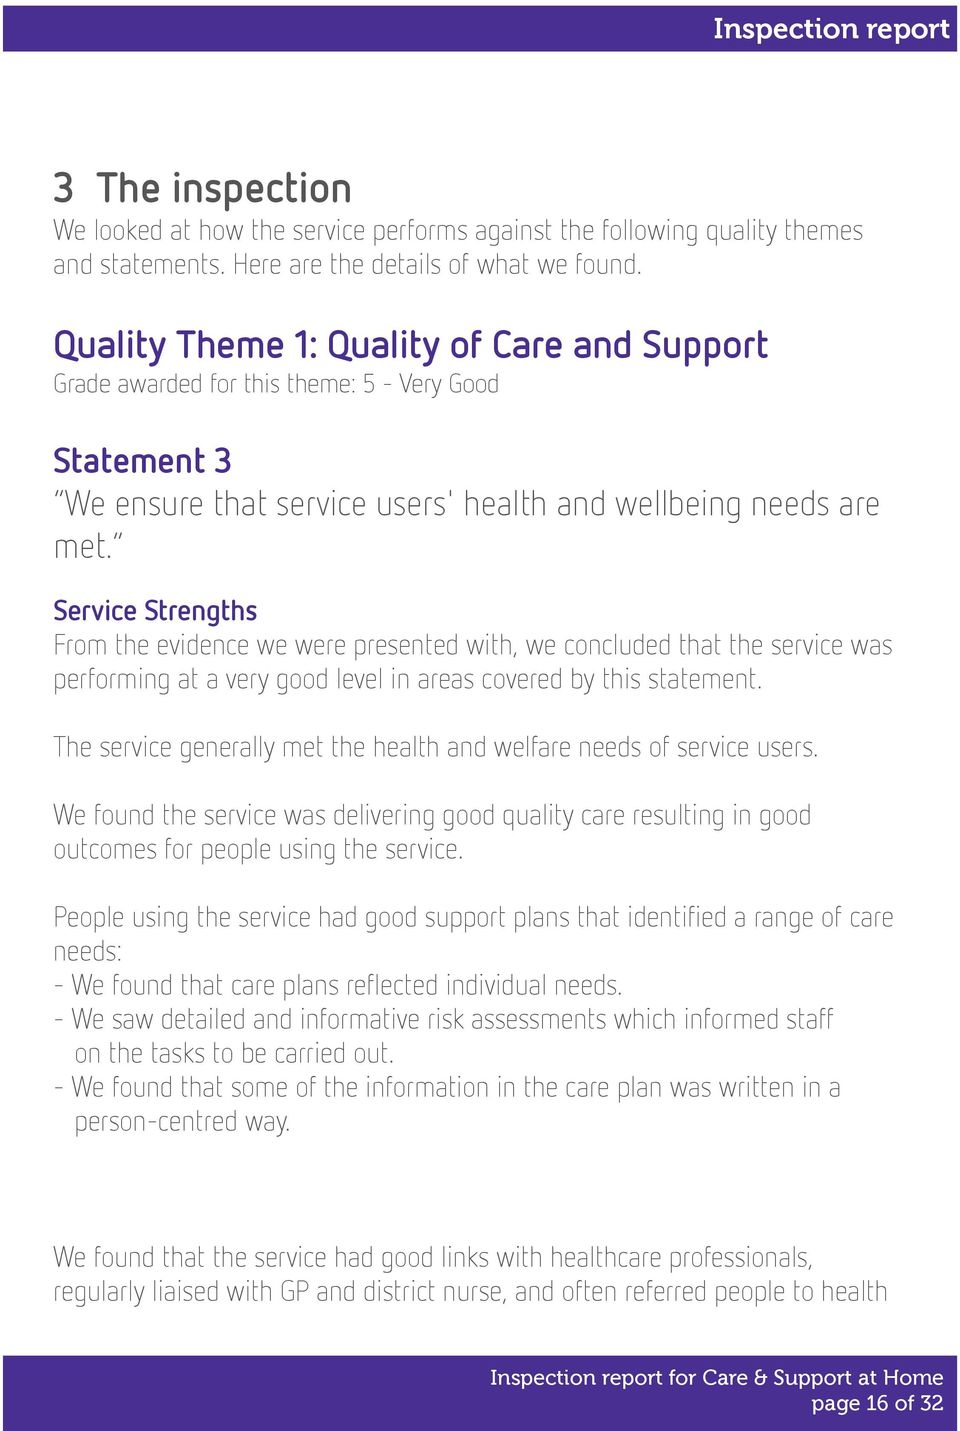 Service Strengths From the evidence we were presented with, we concluded that the service was performing at a very good level in areas covered by this statement.